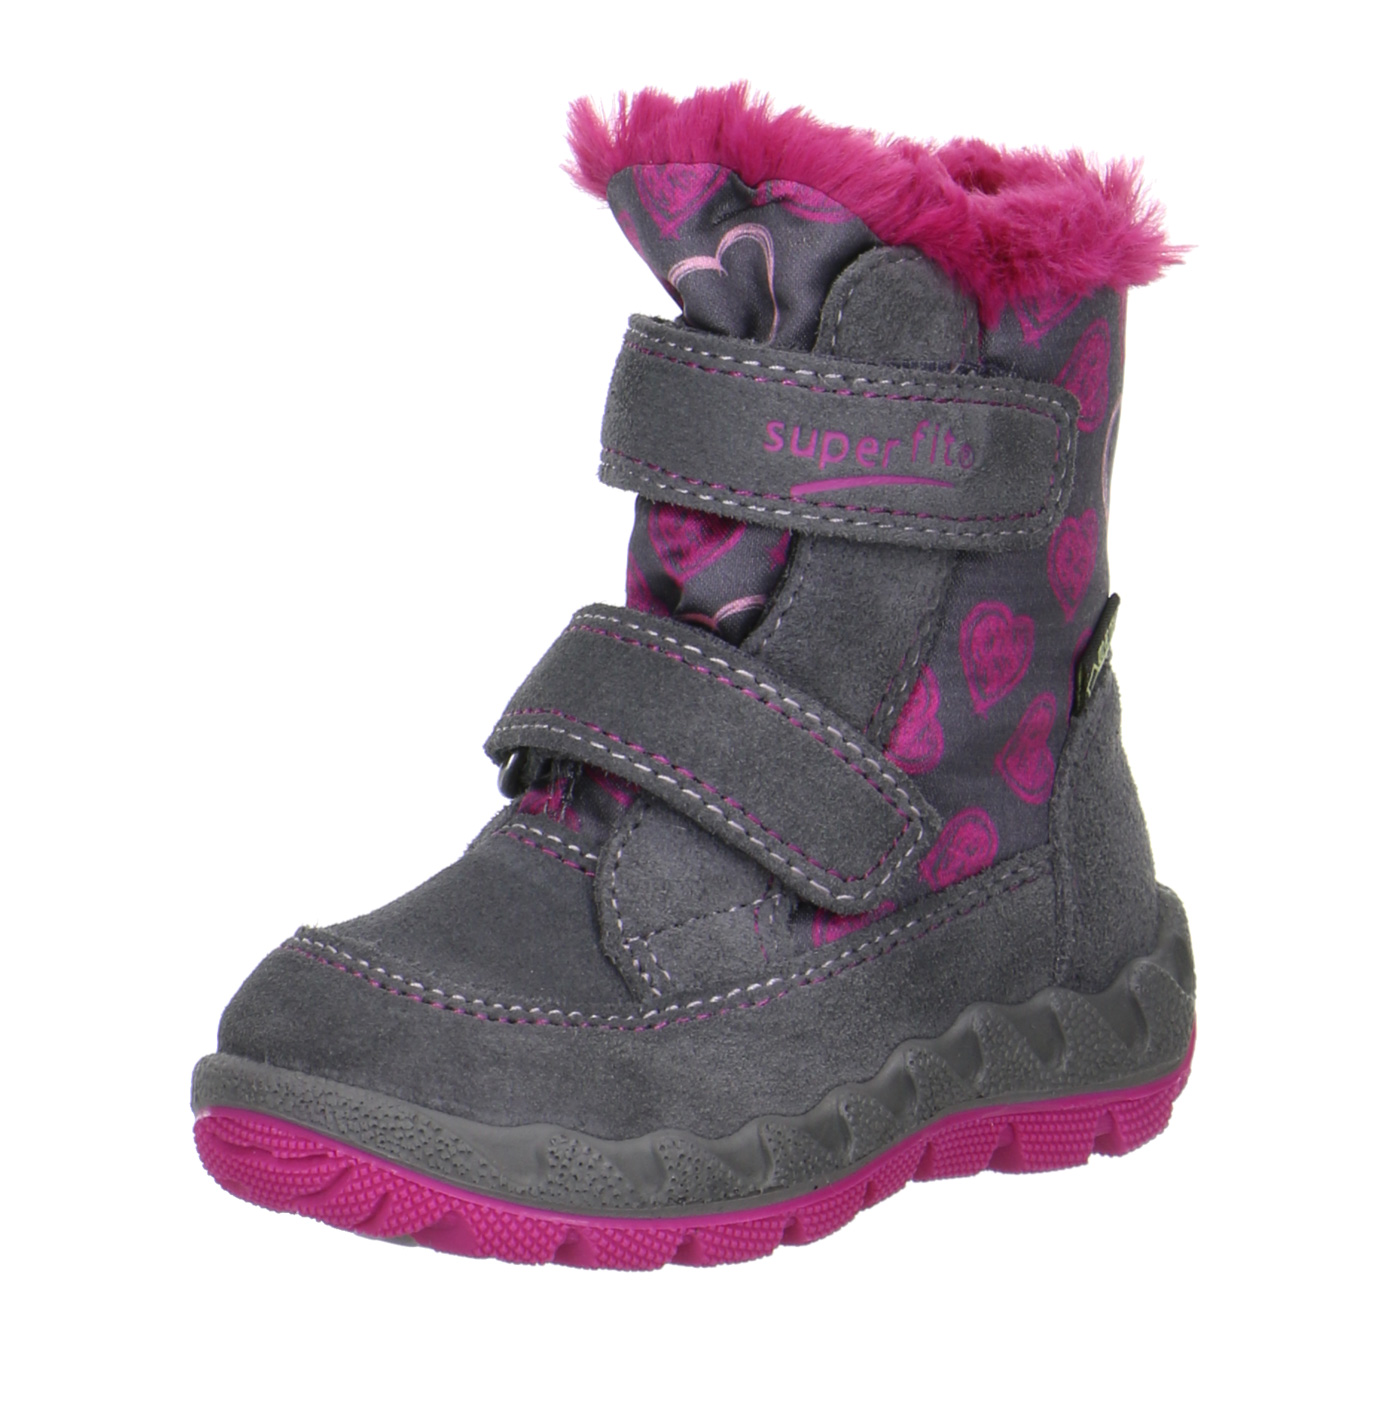 sports shoes 051aa e11ba Superfit Kinder Gore-Tex Stiefel 1-00015-06 stone / pink